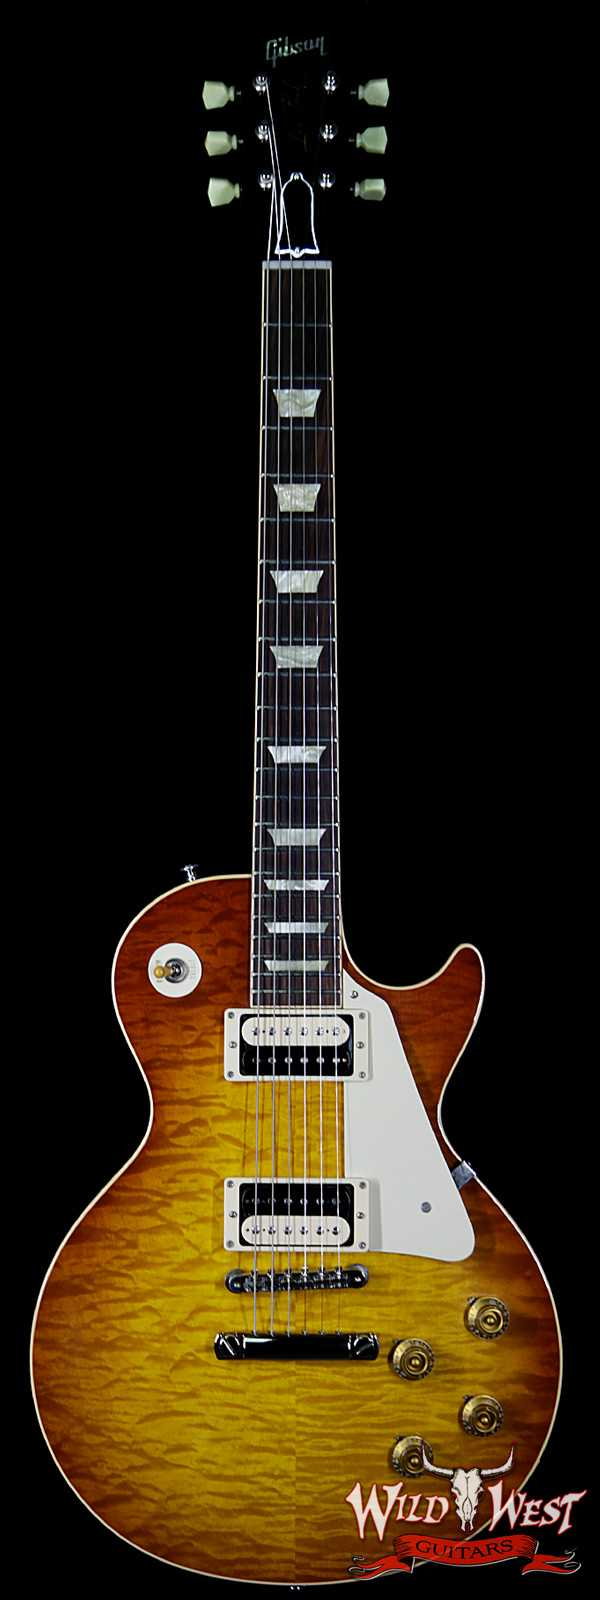 2012 Gibson Custom Shop 1959 Les Paul Gloss R9 Quilt Maple Top Honey Burst 7.75 LBS